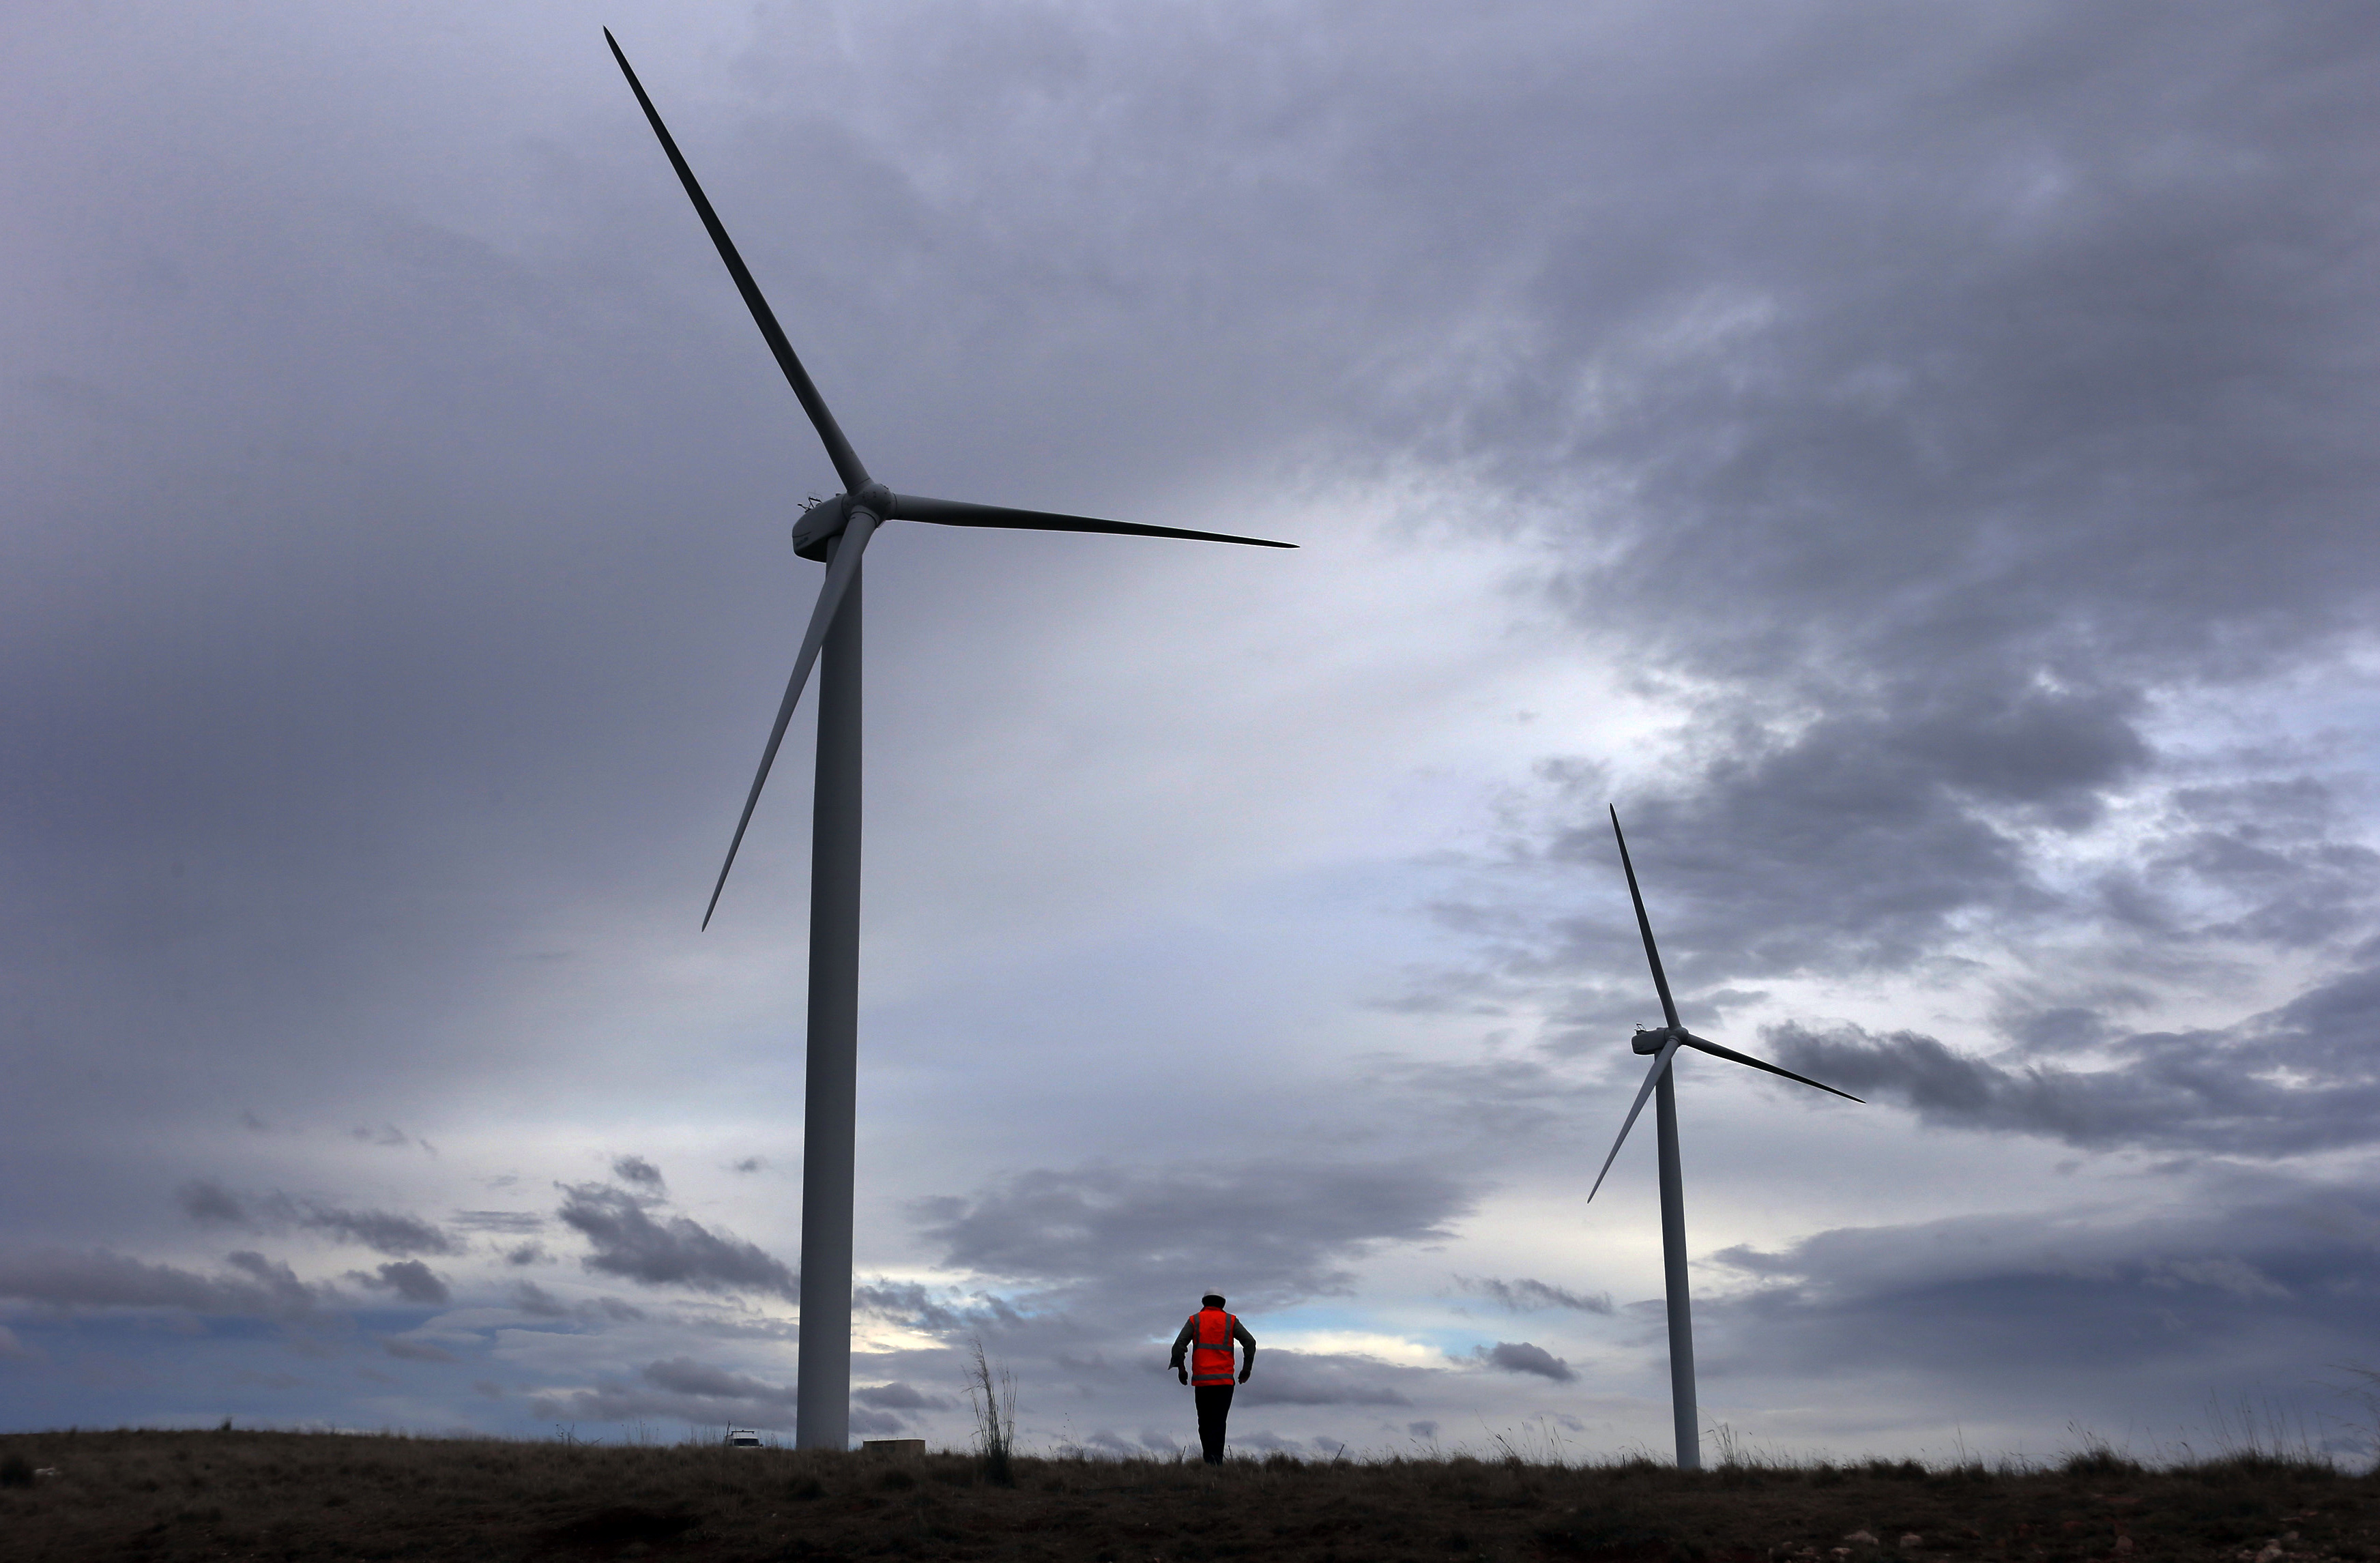 David Brockwell walks between wind turbines during a routine inspection at the Infigen Energy wind farm located on the hills surrounding Lake George, 50 km north of the Australian capital city of Canberra May 13, 2013. Picture taken May 13, 2013. REUTERS/David Gray